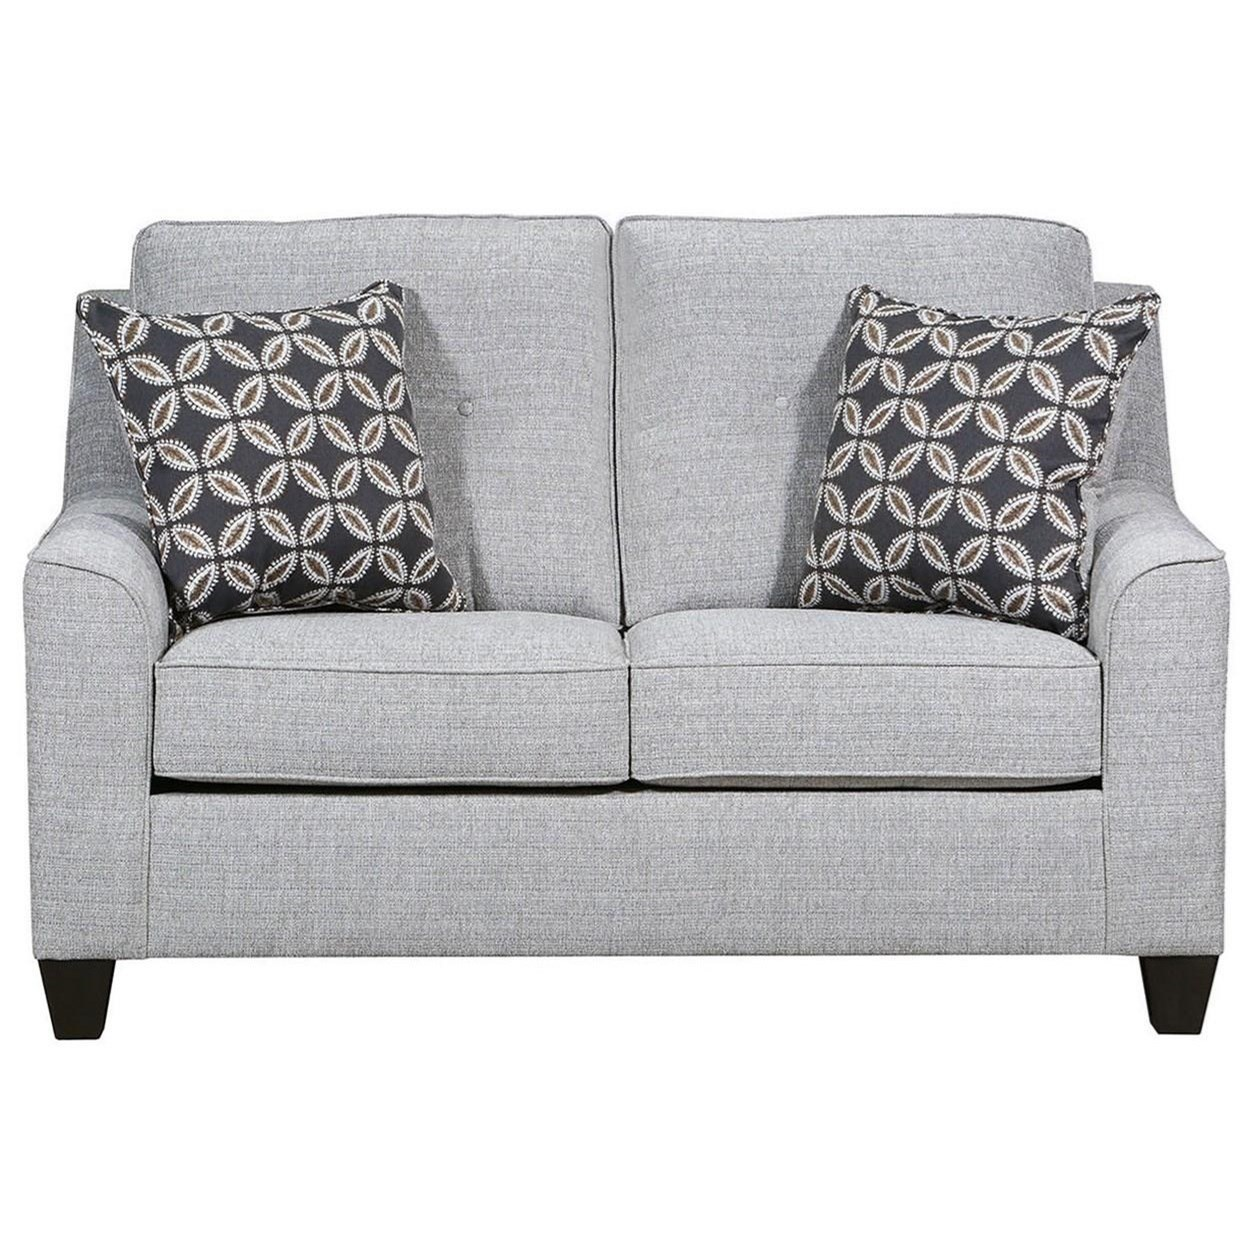 2019 Stationary Loveseat by Lane at Darvin Furniture